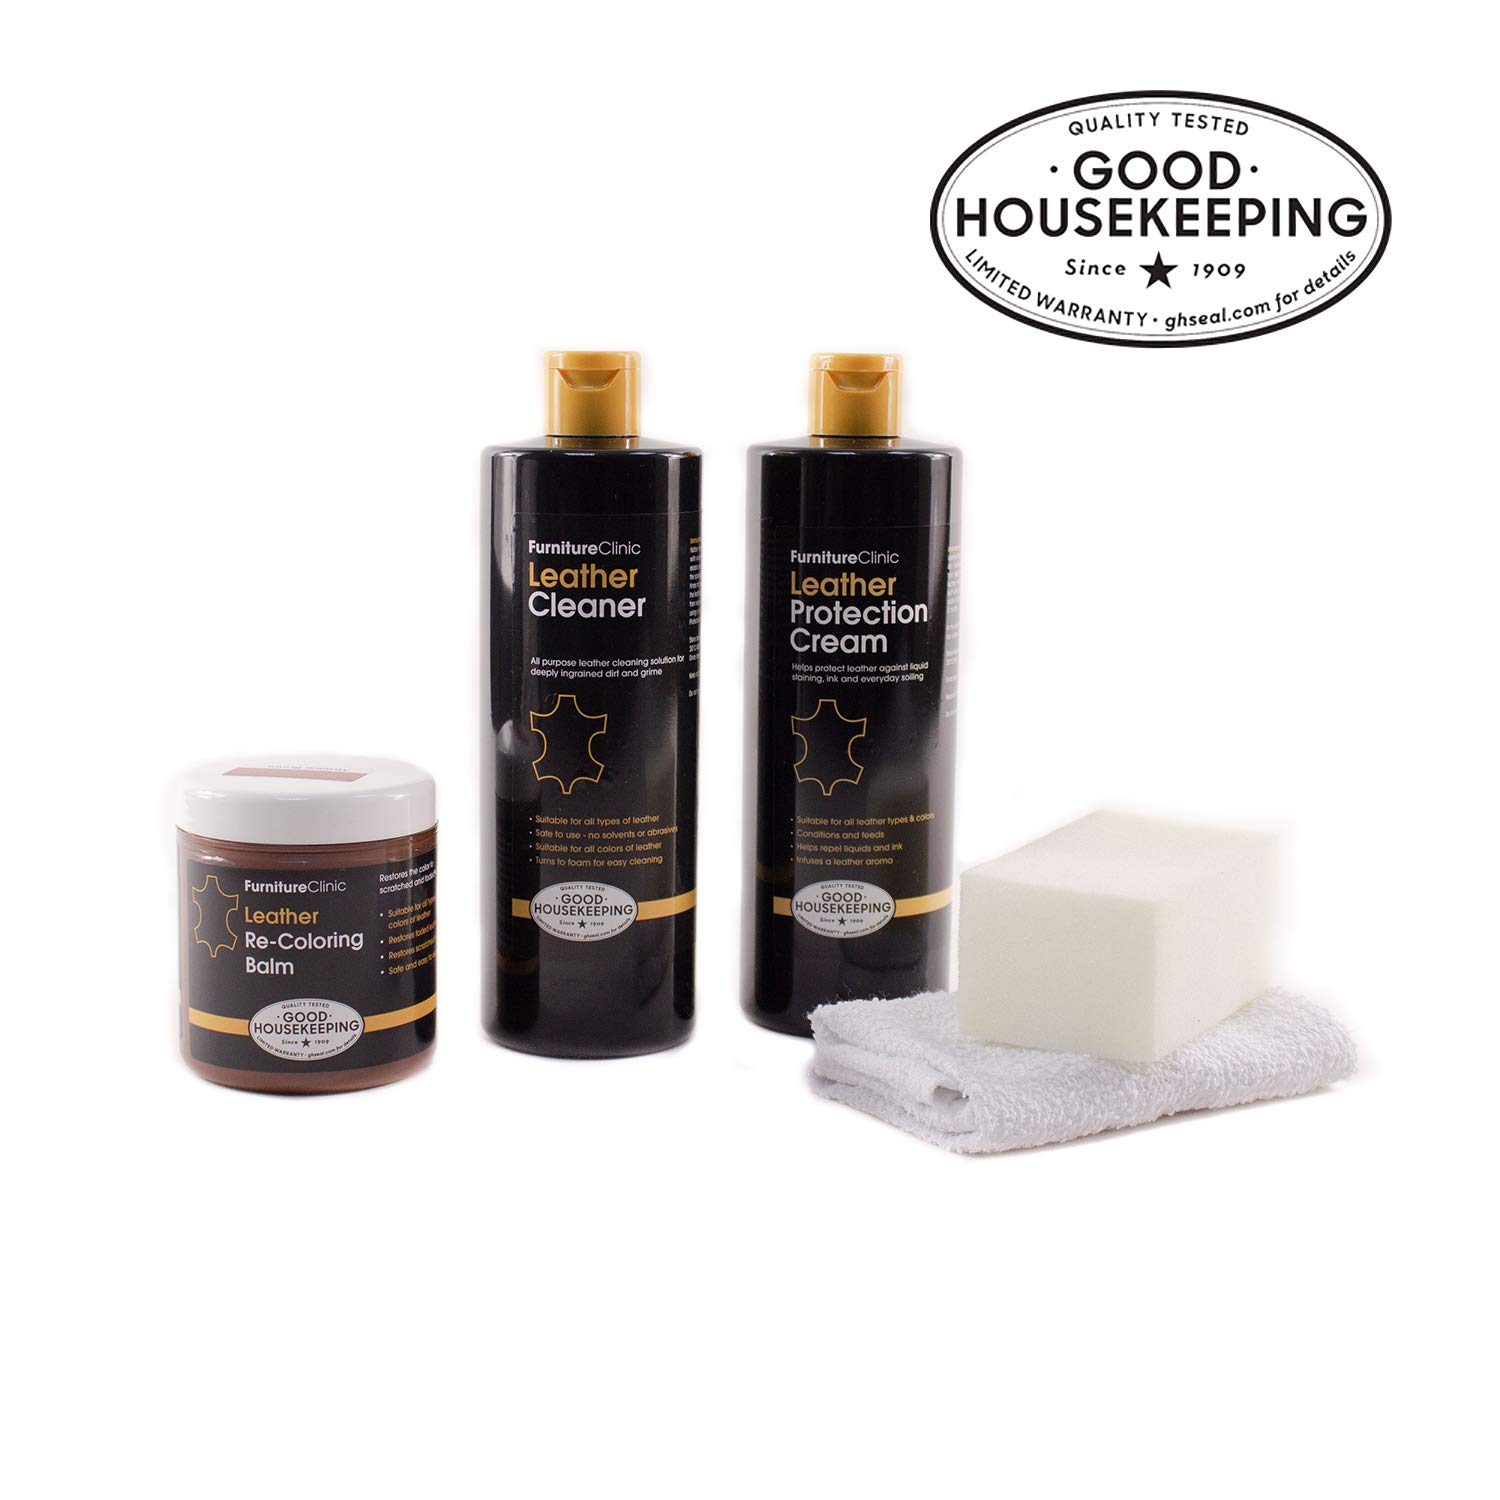 Furniture Clinic Leather Complete Restoration Kit - Set Includes Leather Recoloring Balm, Protection Cream, Cleaner, Sponge and Cloth - Restore and Repair Sofas, Car Seats and More (White)